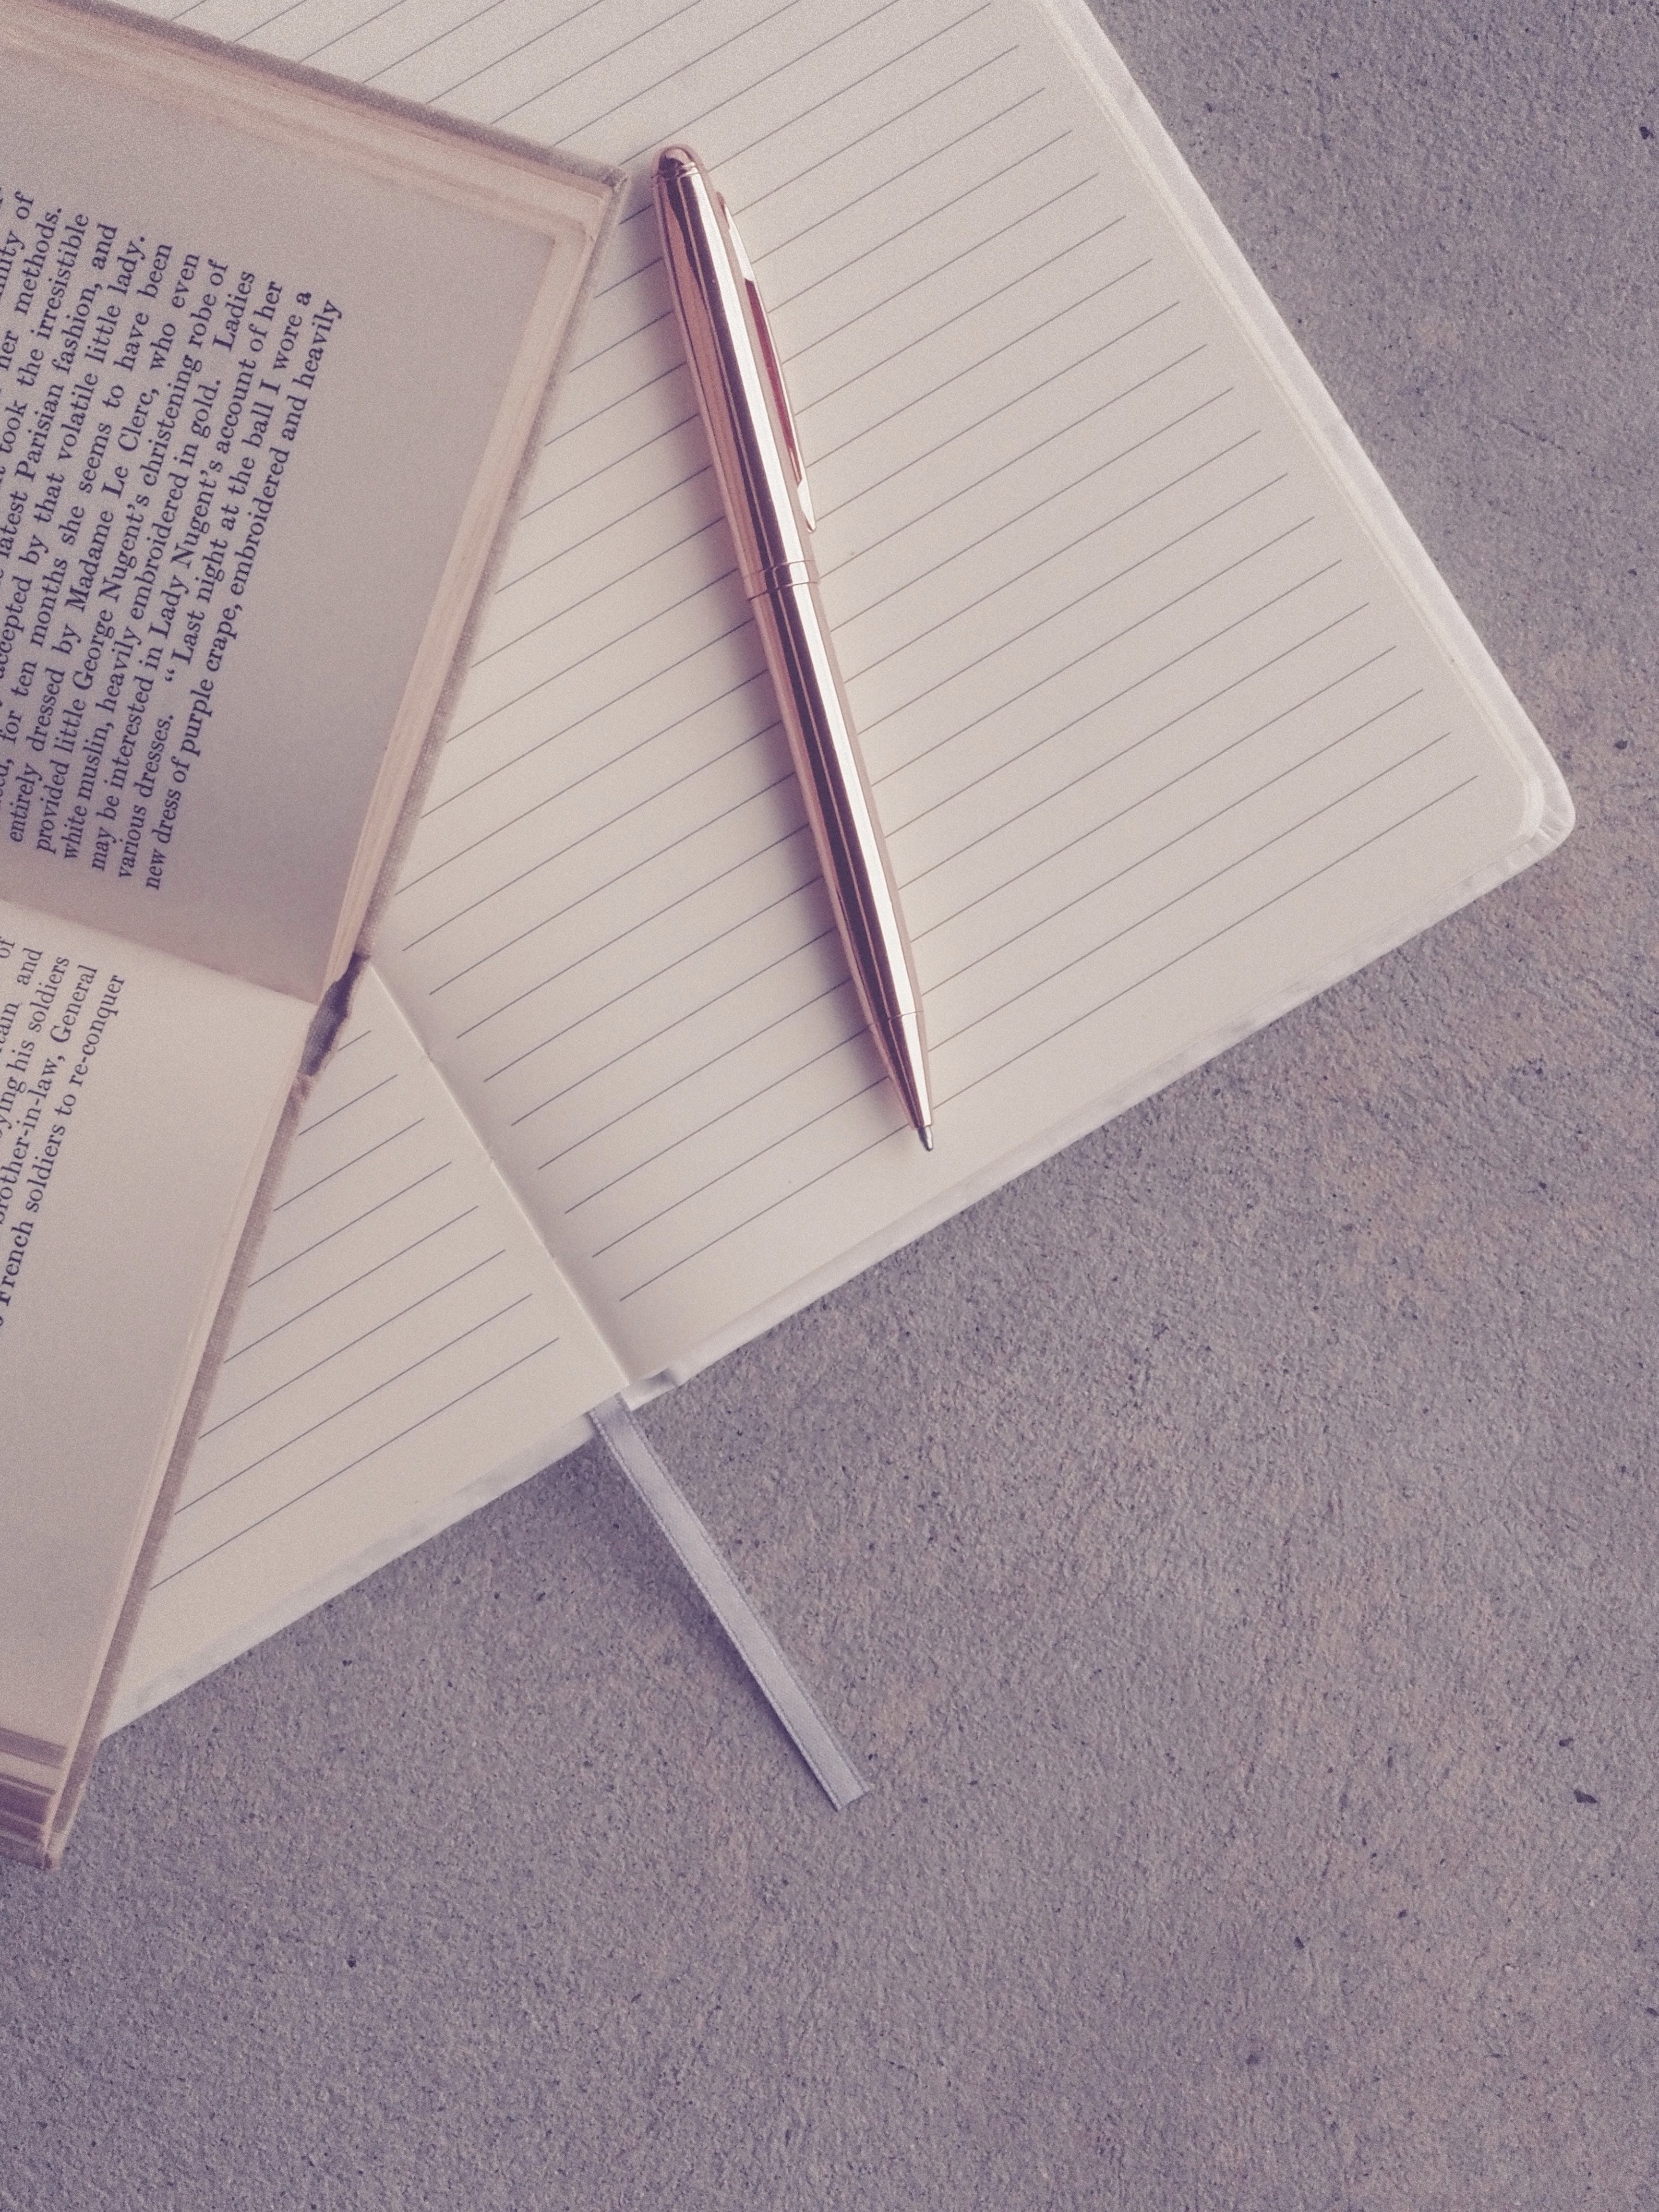 Book and Pen on Notebook